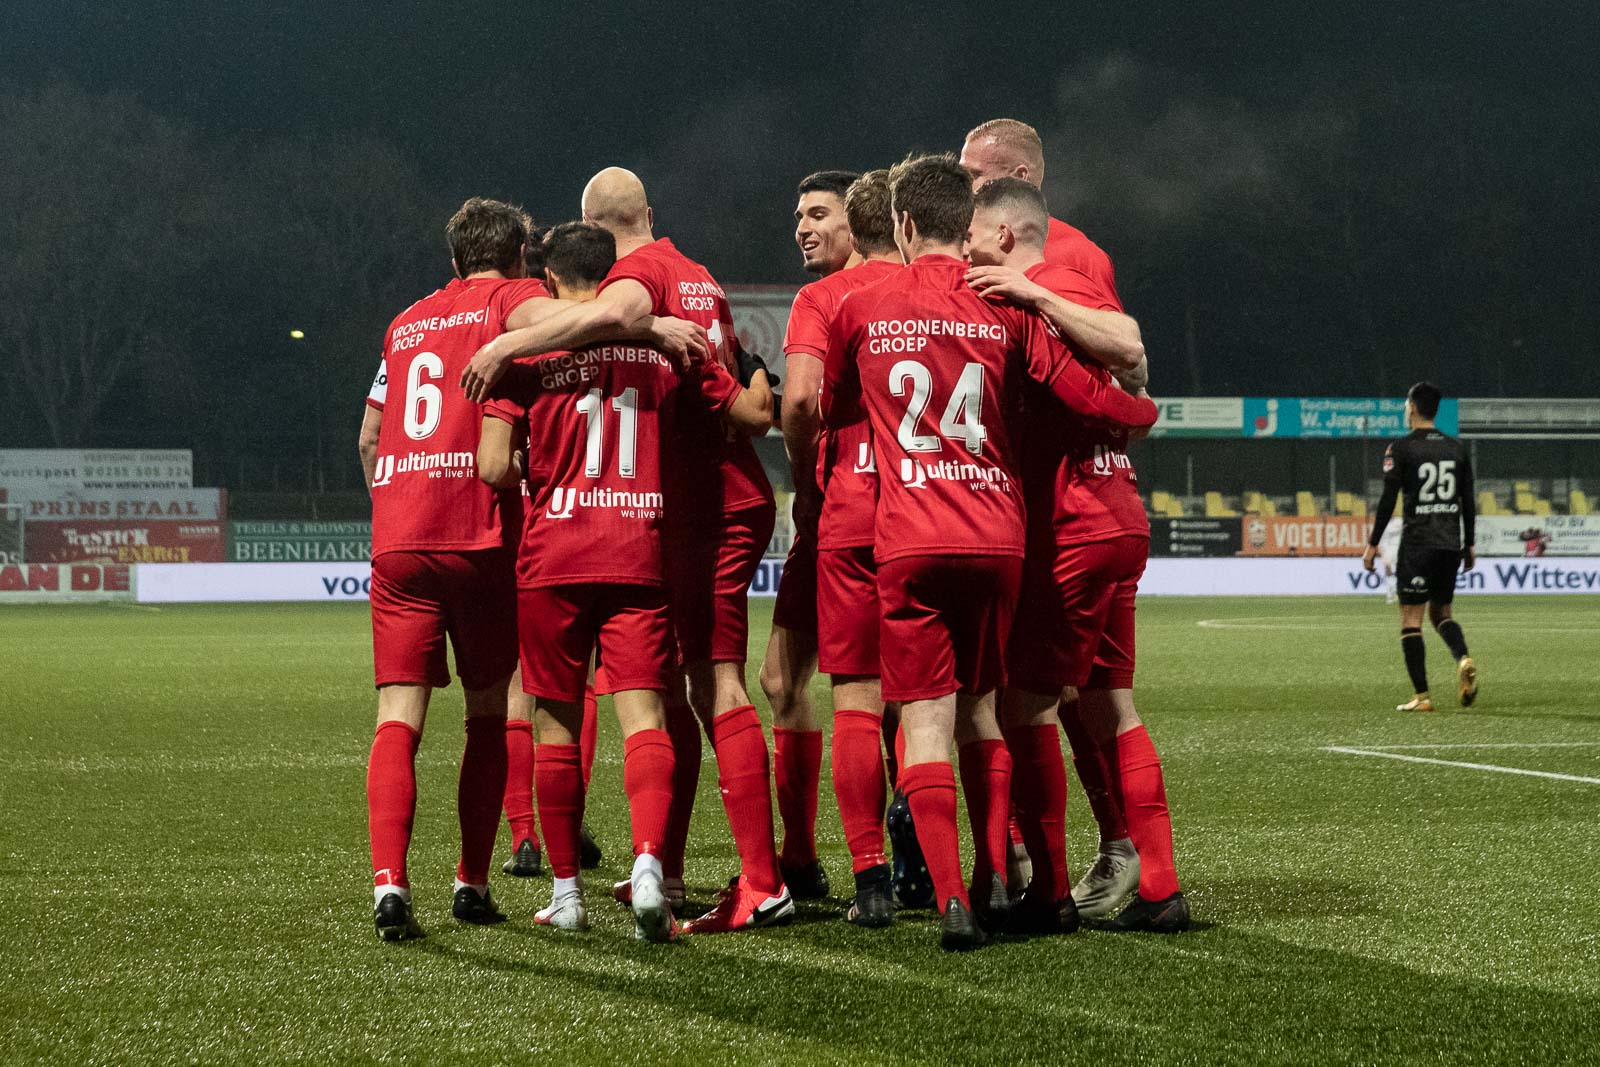 Droomstart bezorgd Almere City FC overwinning in Velsen